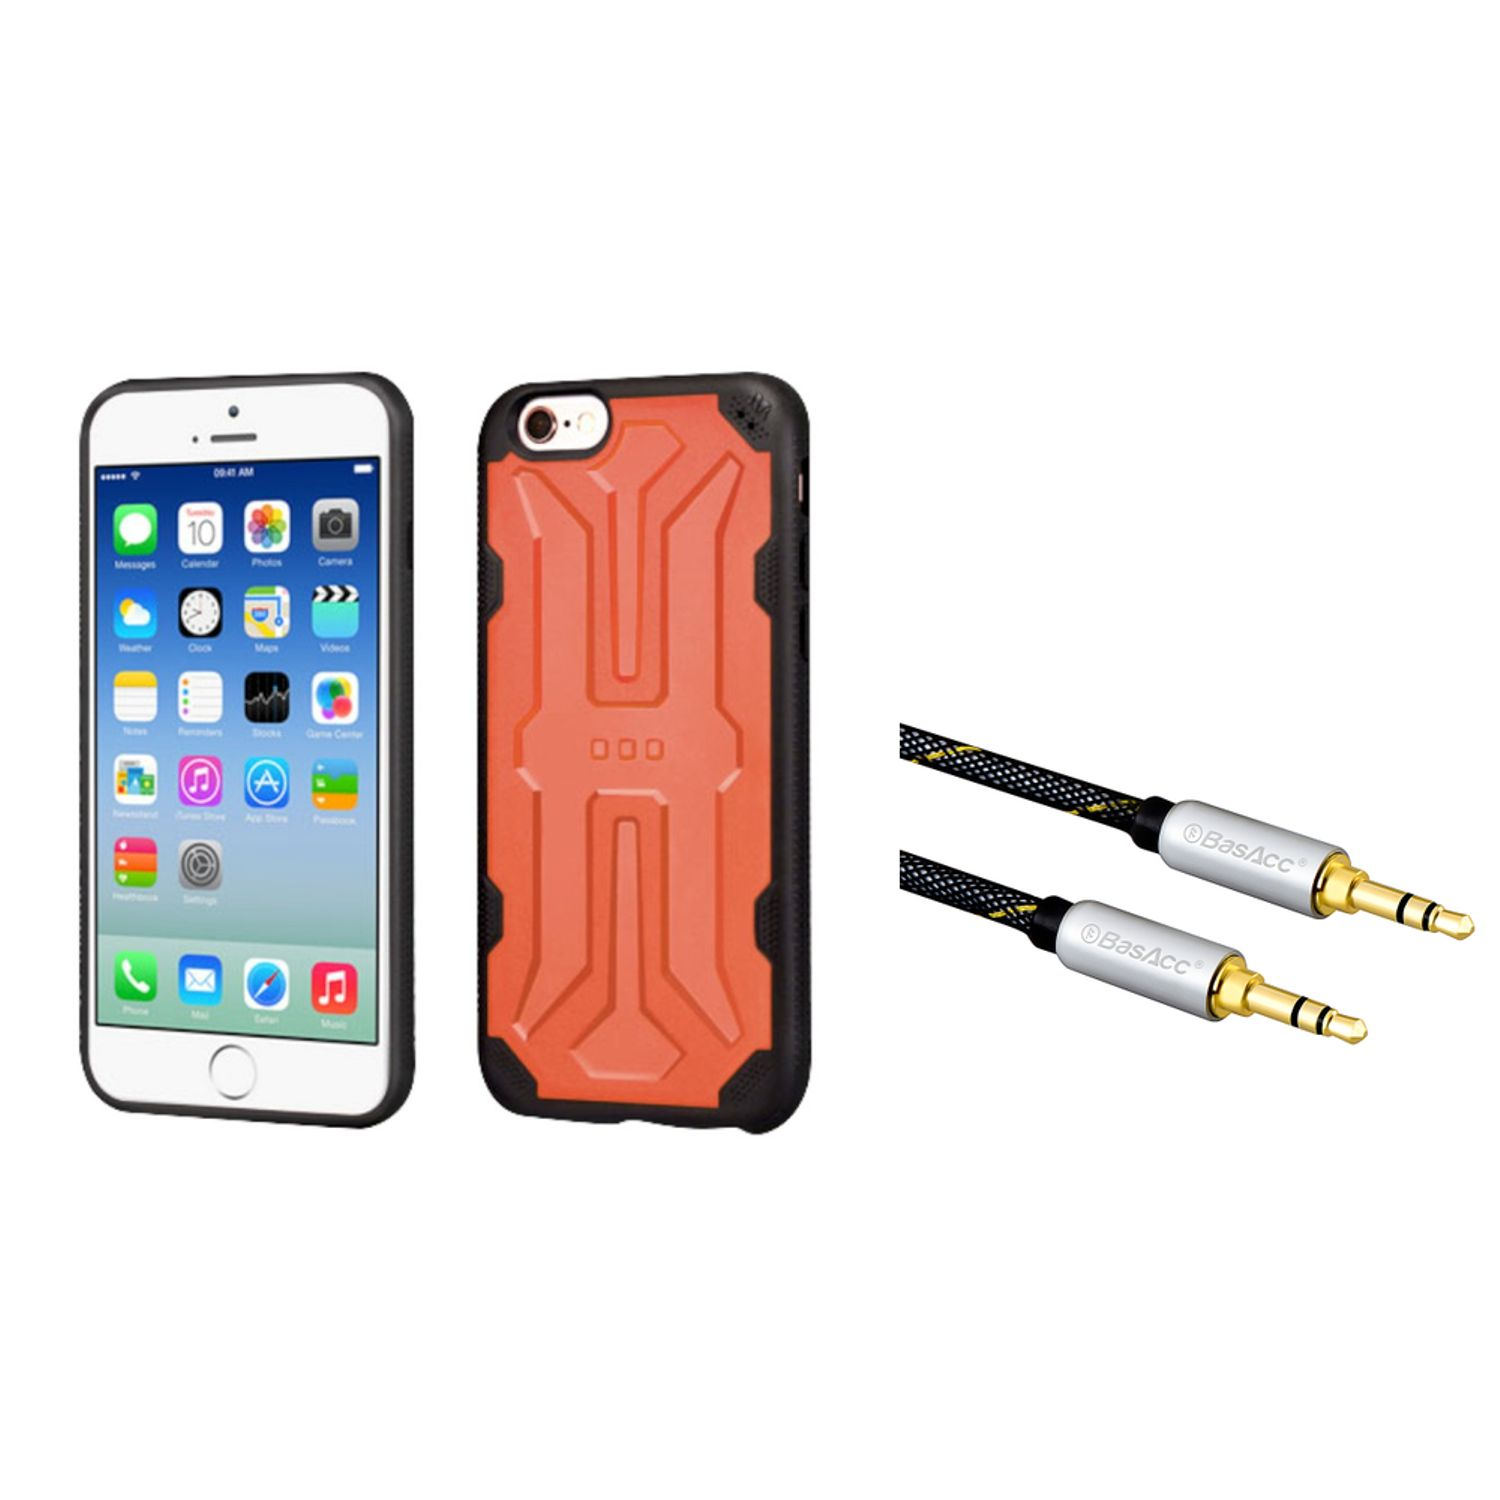 Insten Hard TPU Cover Case For Apple iPhone 6/6s - Orange/Black (with 3.5mm Audio Extension Cable M/M)